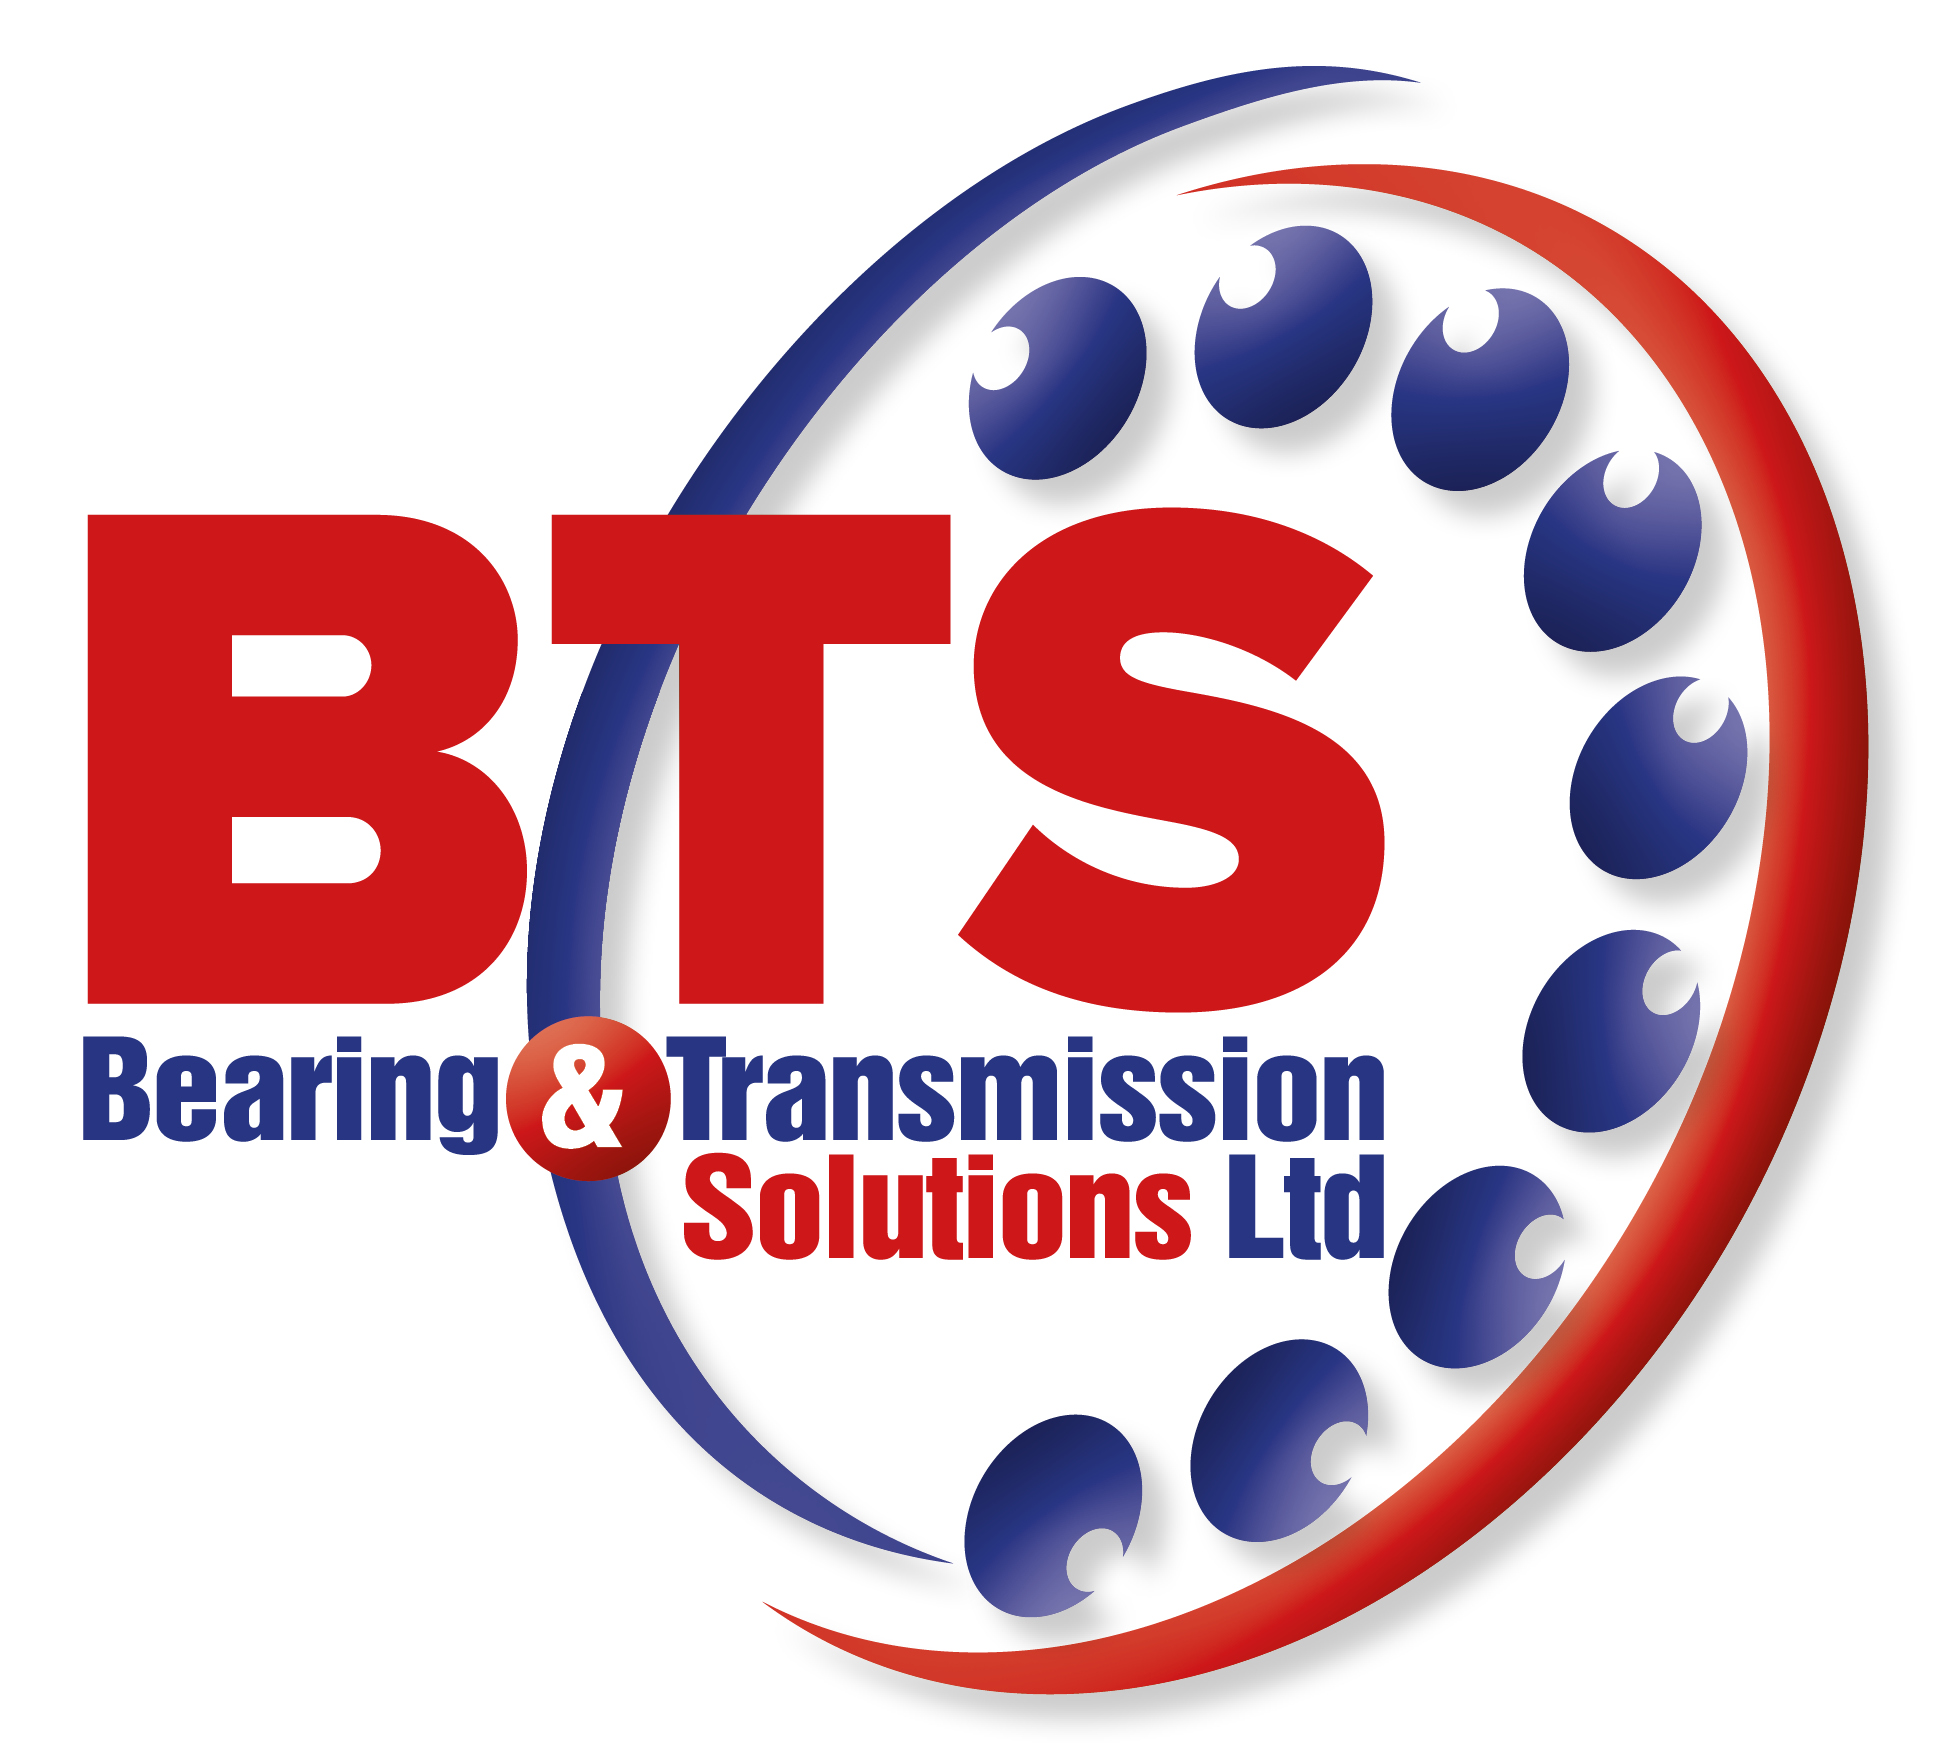 Bearing & Transmissions Solutions